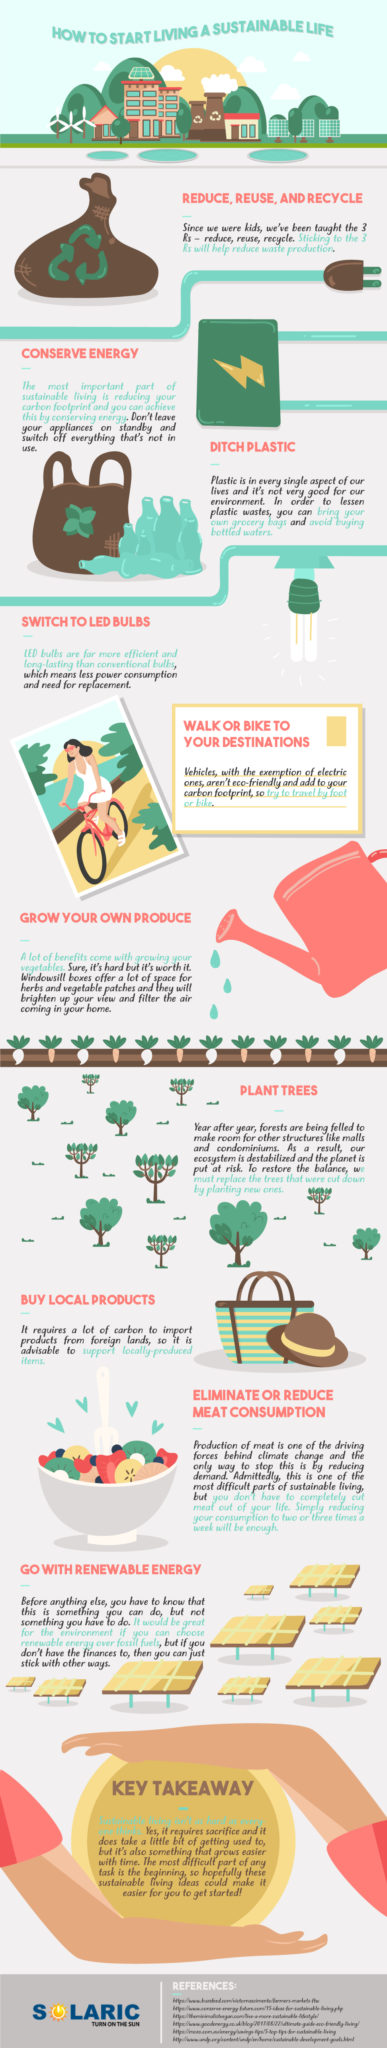 How to Start Living a Sustainable Life Infographic